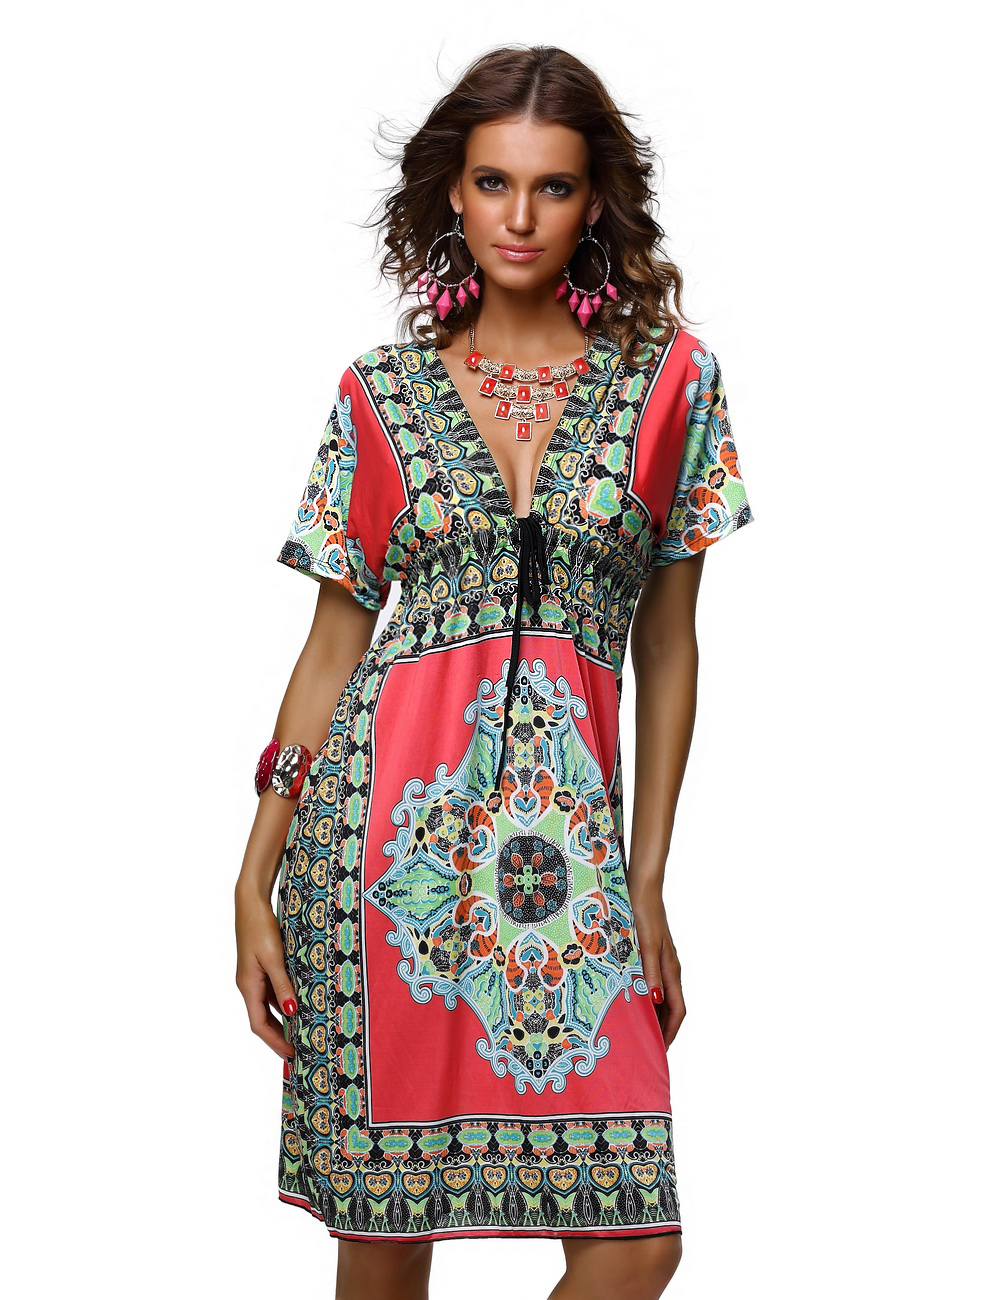 High Waist Short Sleeve Loose Colorful Summer Dress